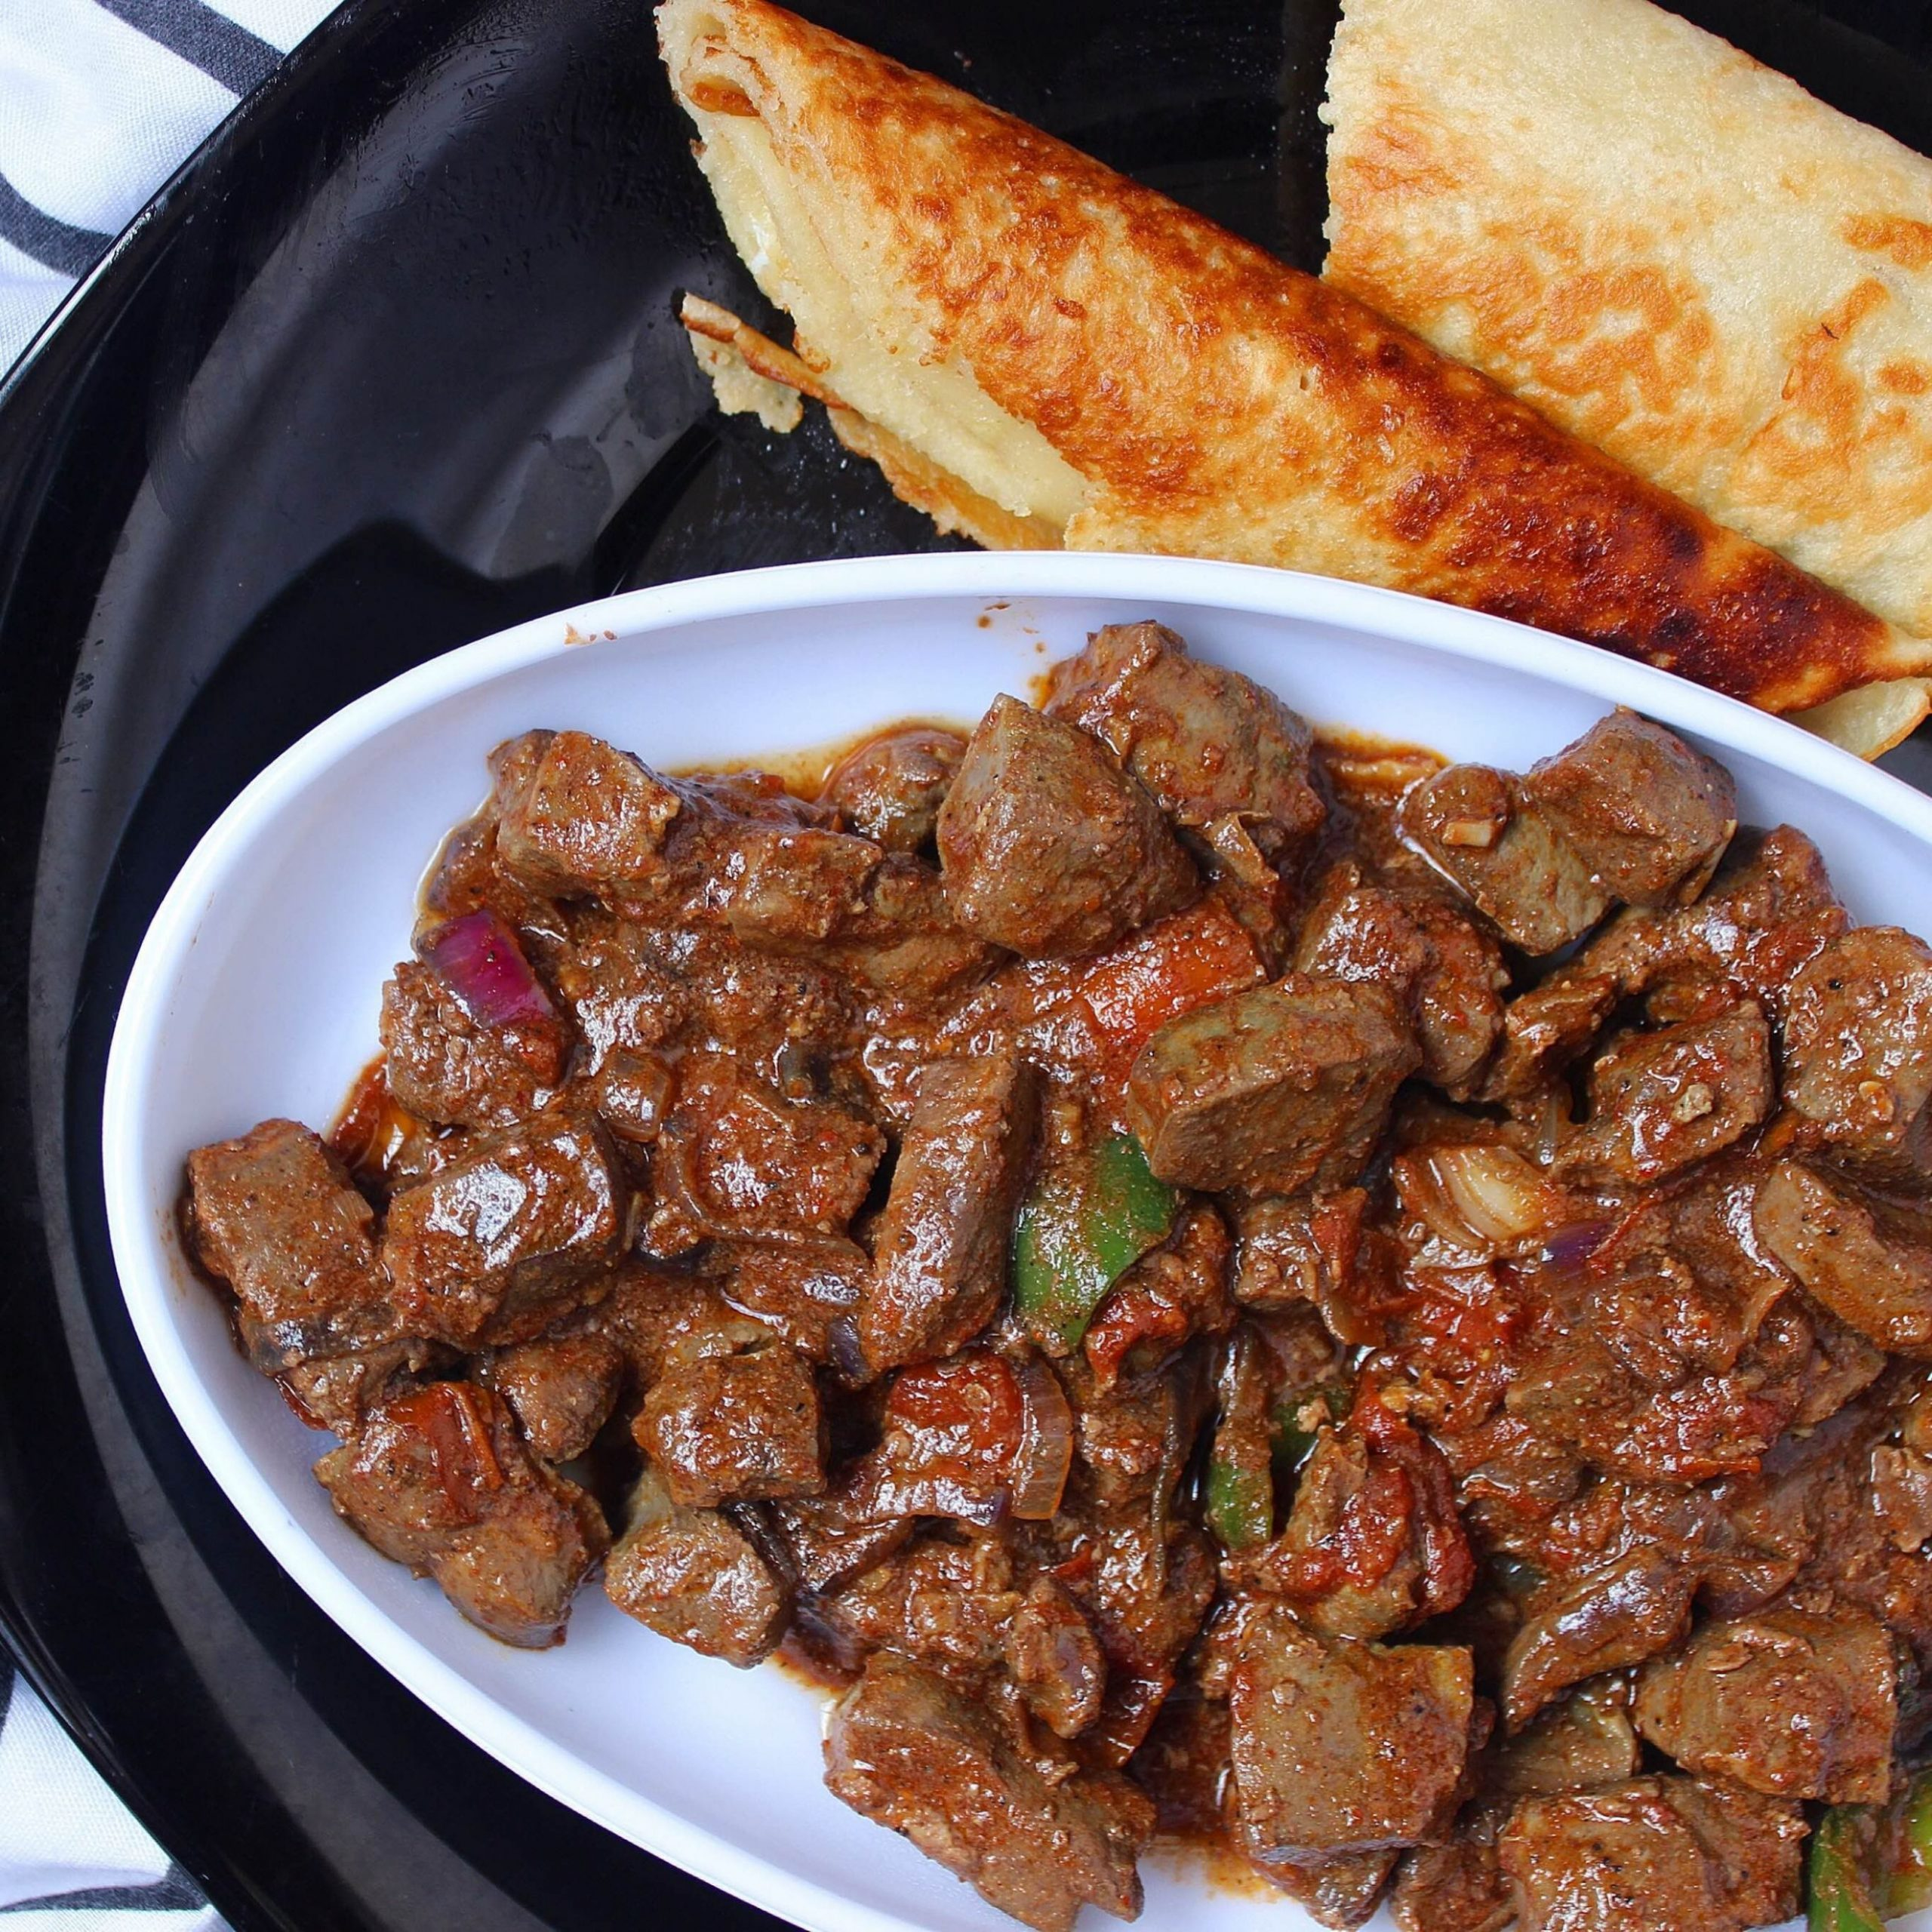 Beef liver Kenyan style | Liver recipes, Food, Cooking recipes